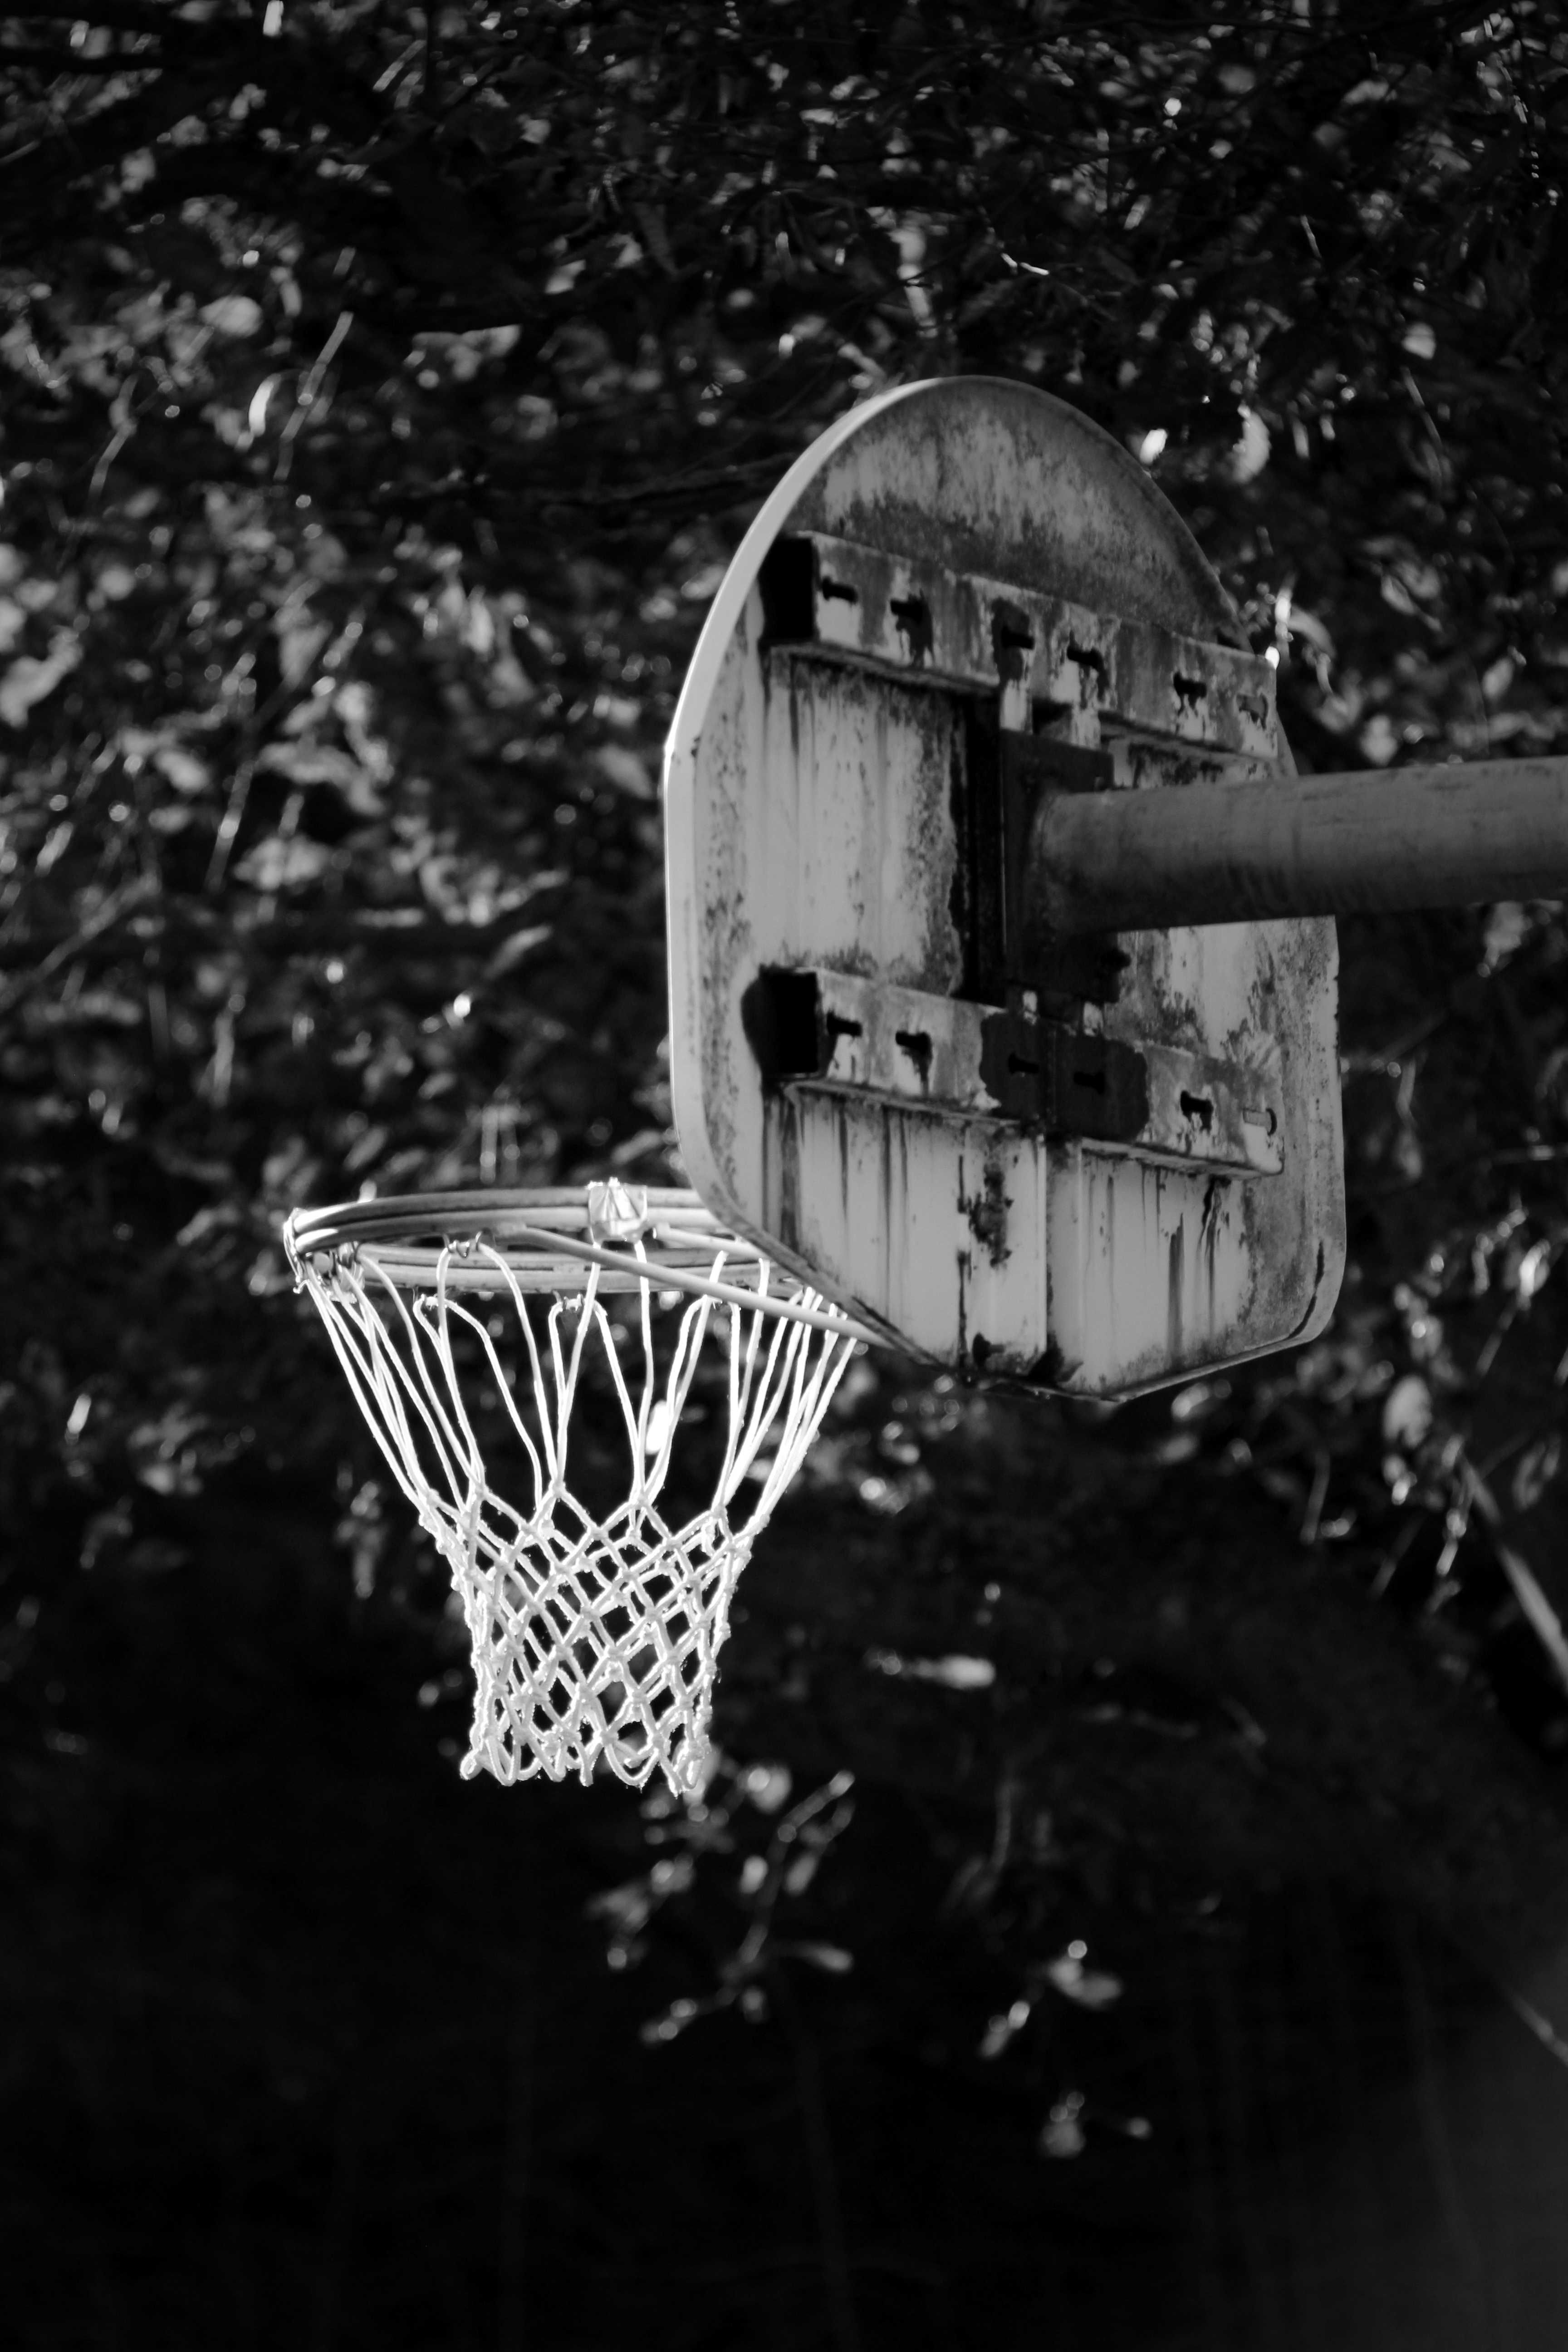 Day3: Black and White #1 Basketball / Discovery Park, Seattle